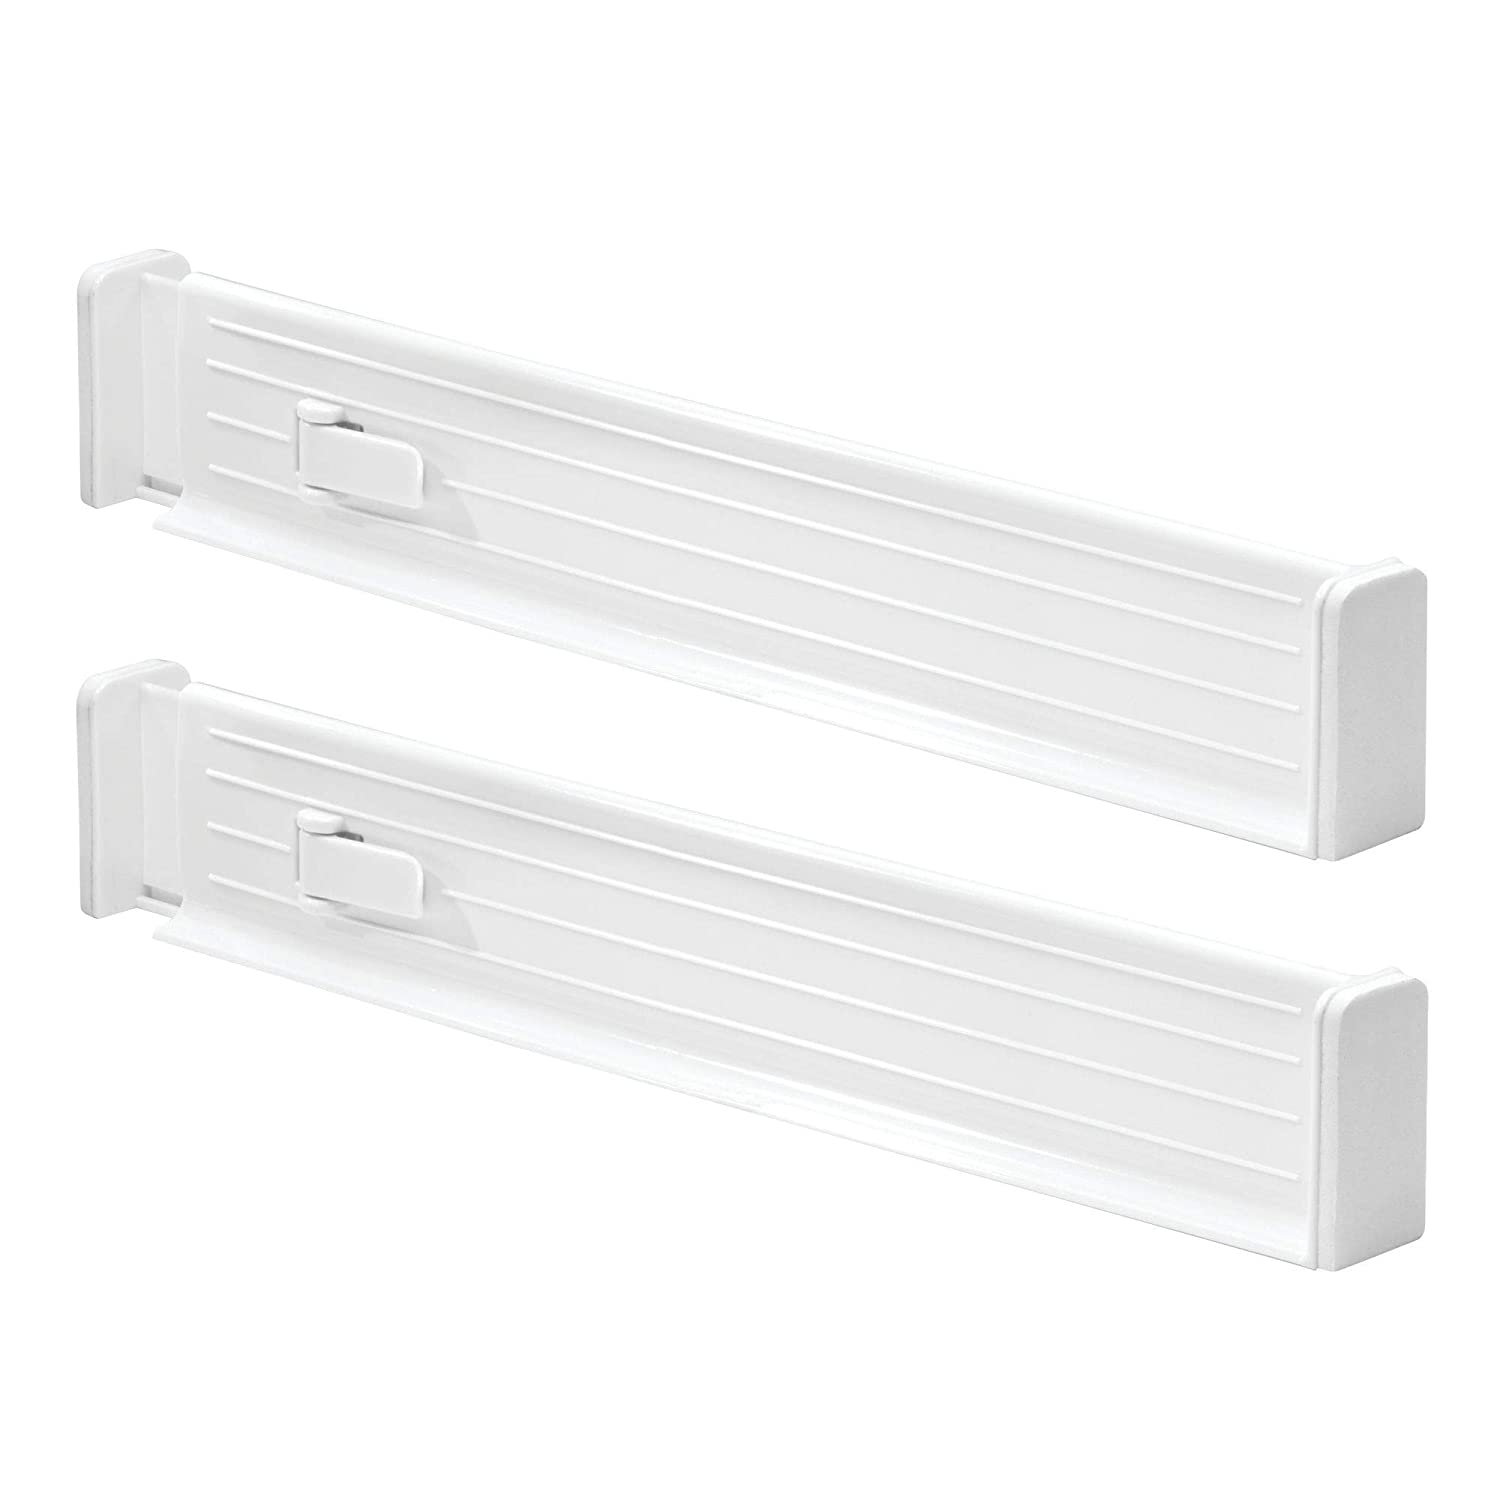 """mDesign Adjustable, Expandable Deep Drawer Organizer/Divider - Foam Ends, Strong Secure Hold, Locks in Place - for Kitchen Towel Storage, Utensils, Junk Drawers - 2.5"""" High, 2 Pack - White"""